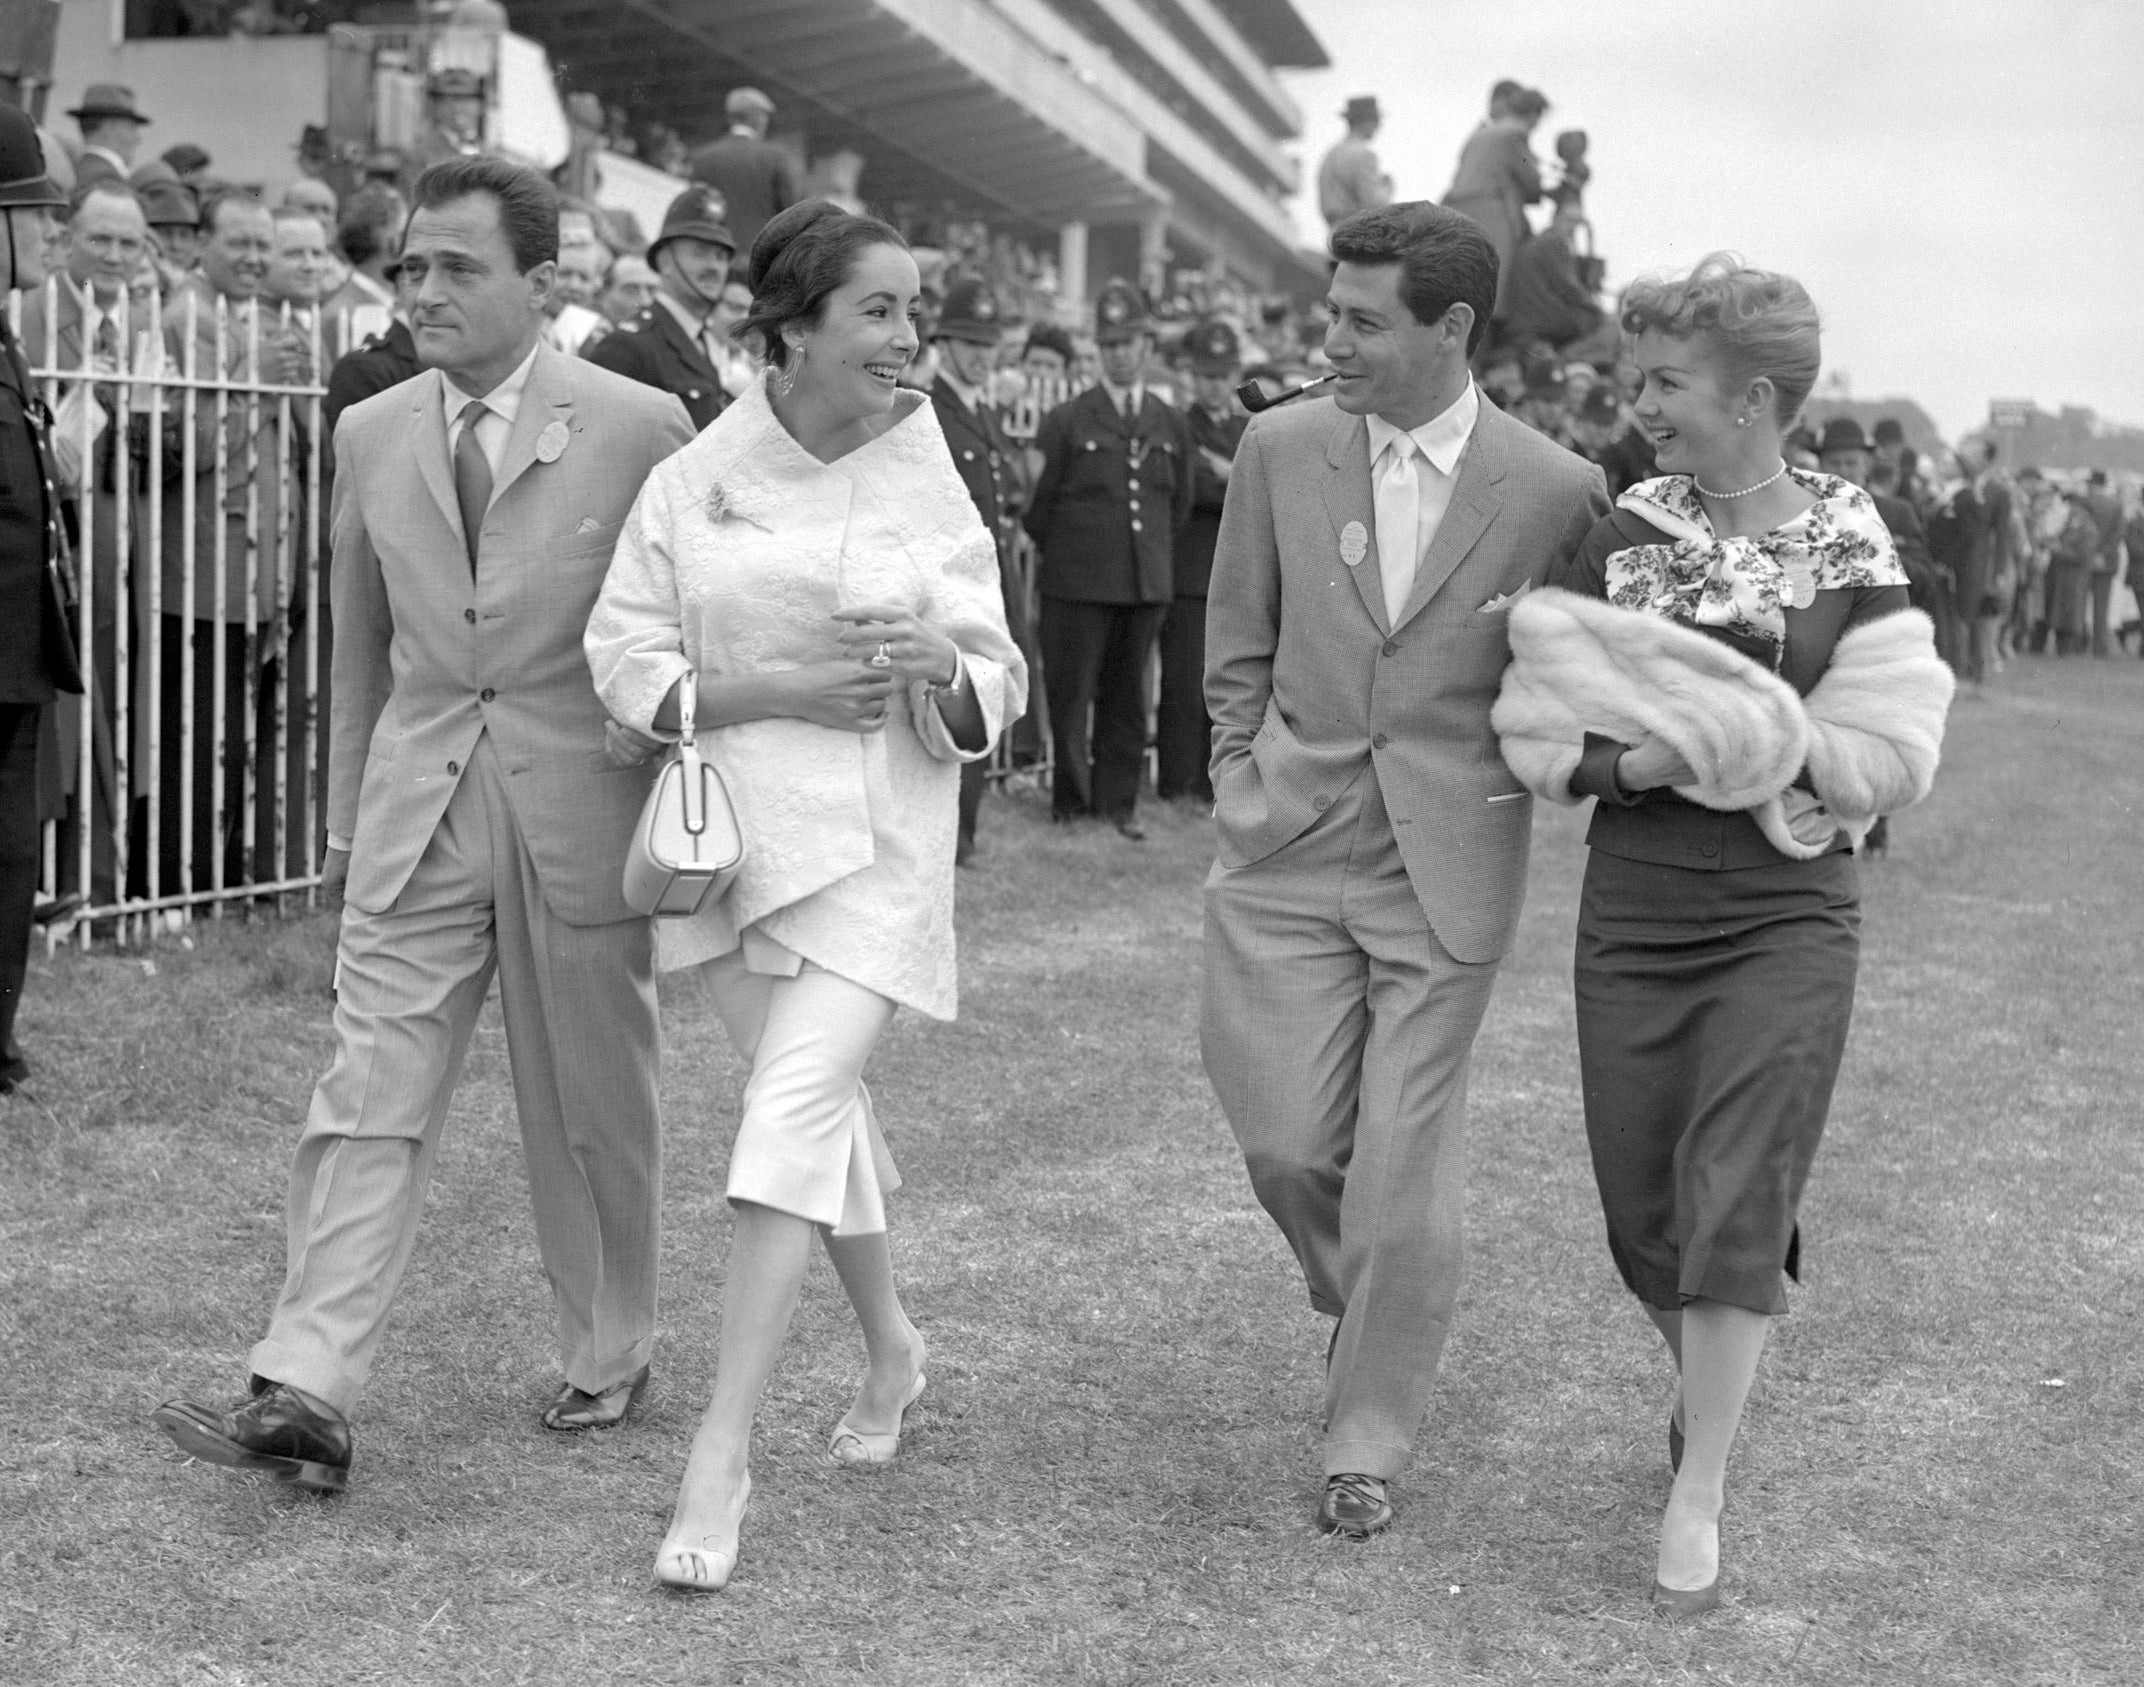 the two couples stroll together at a horse derby